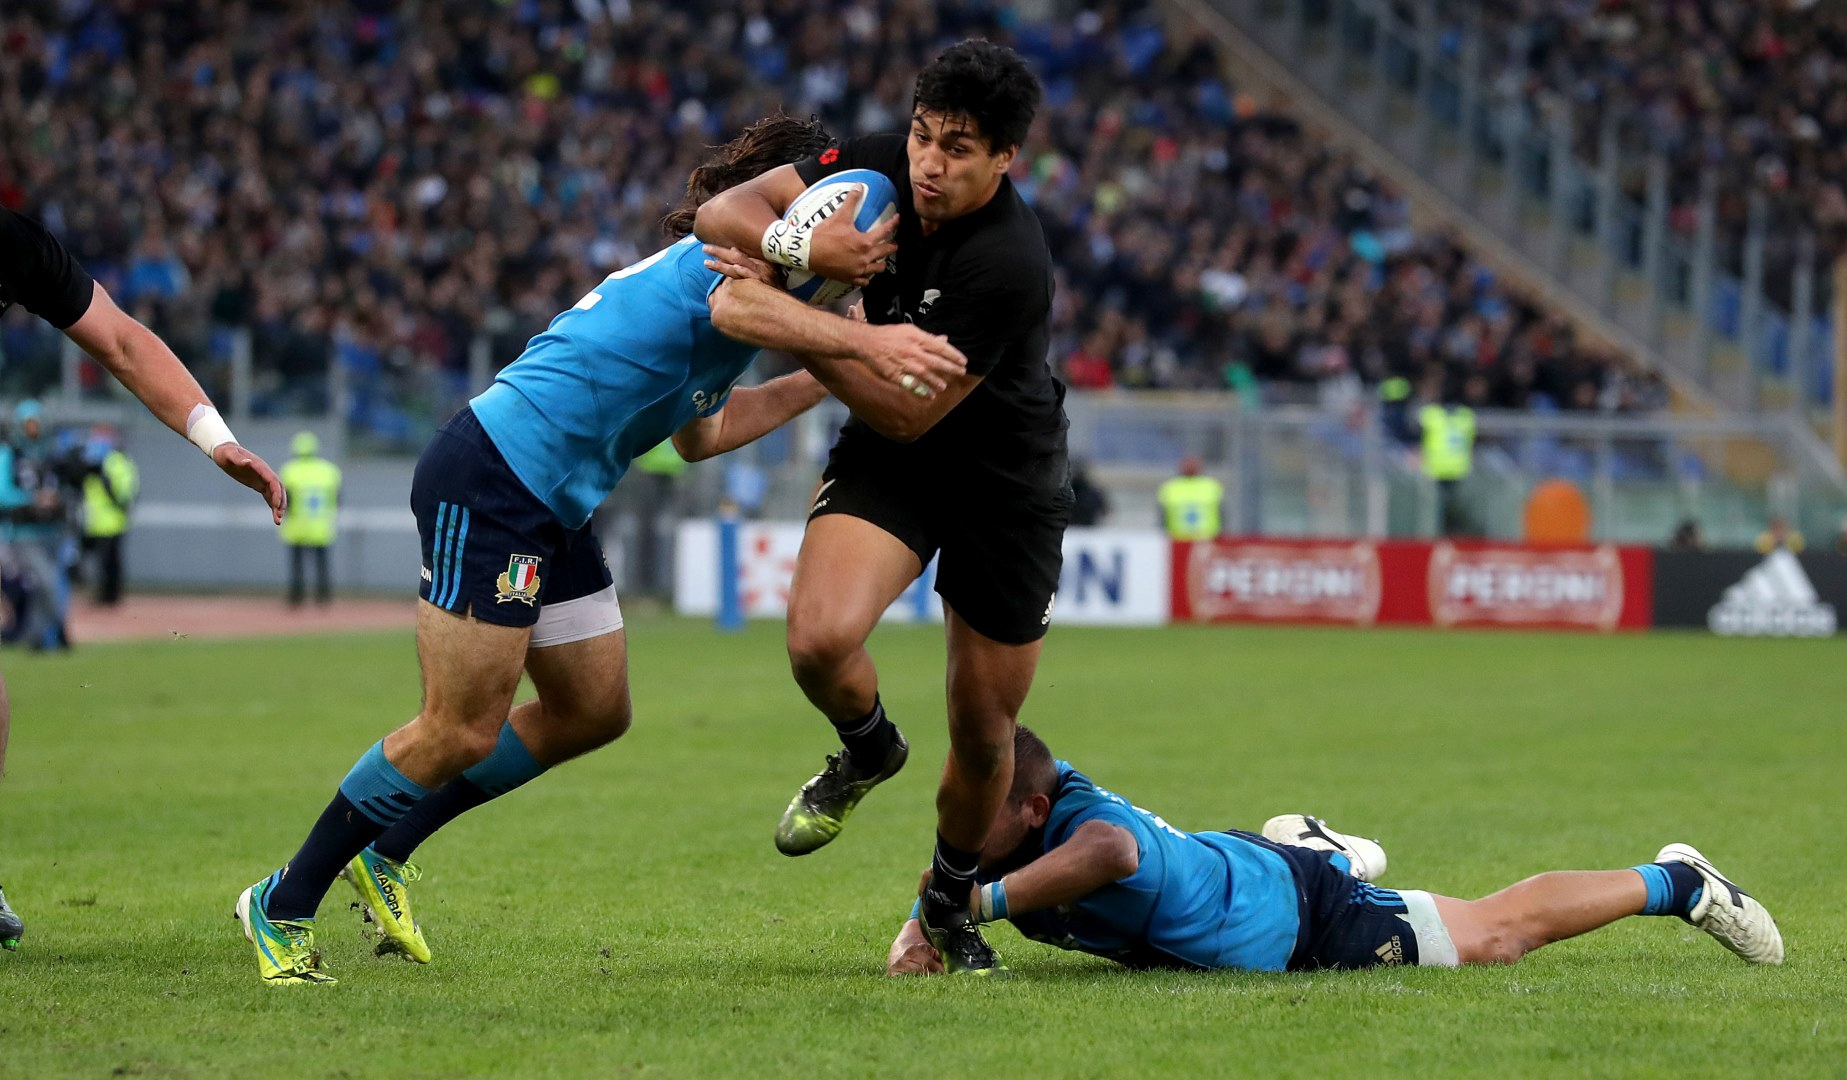 LionsWatch: All Blacks bounce back in Rome